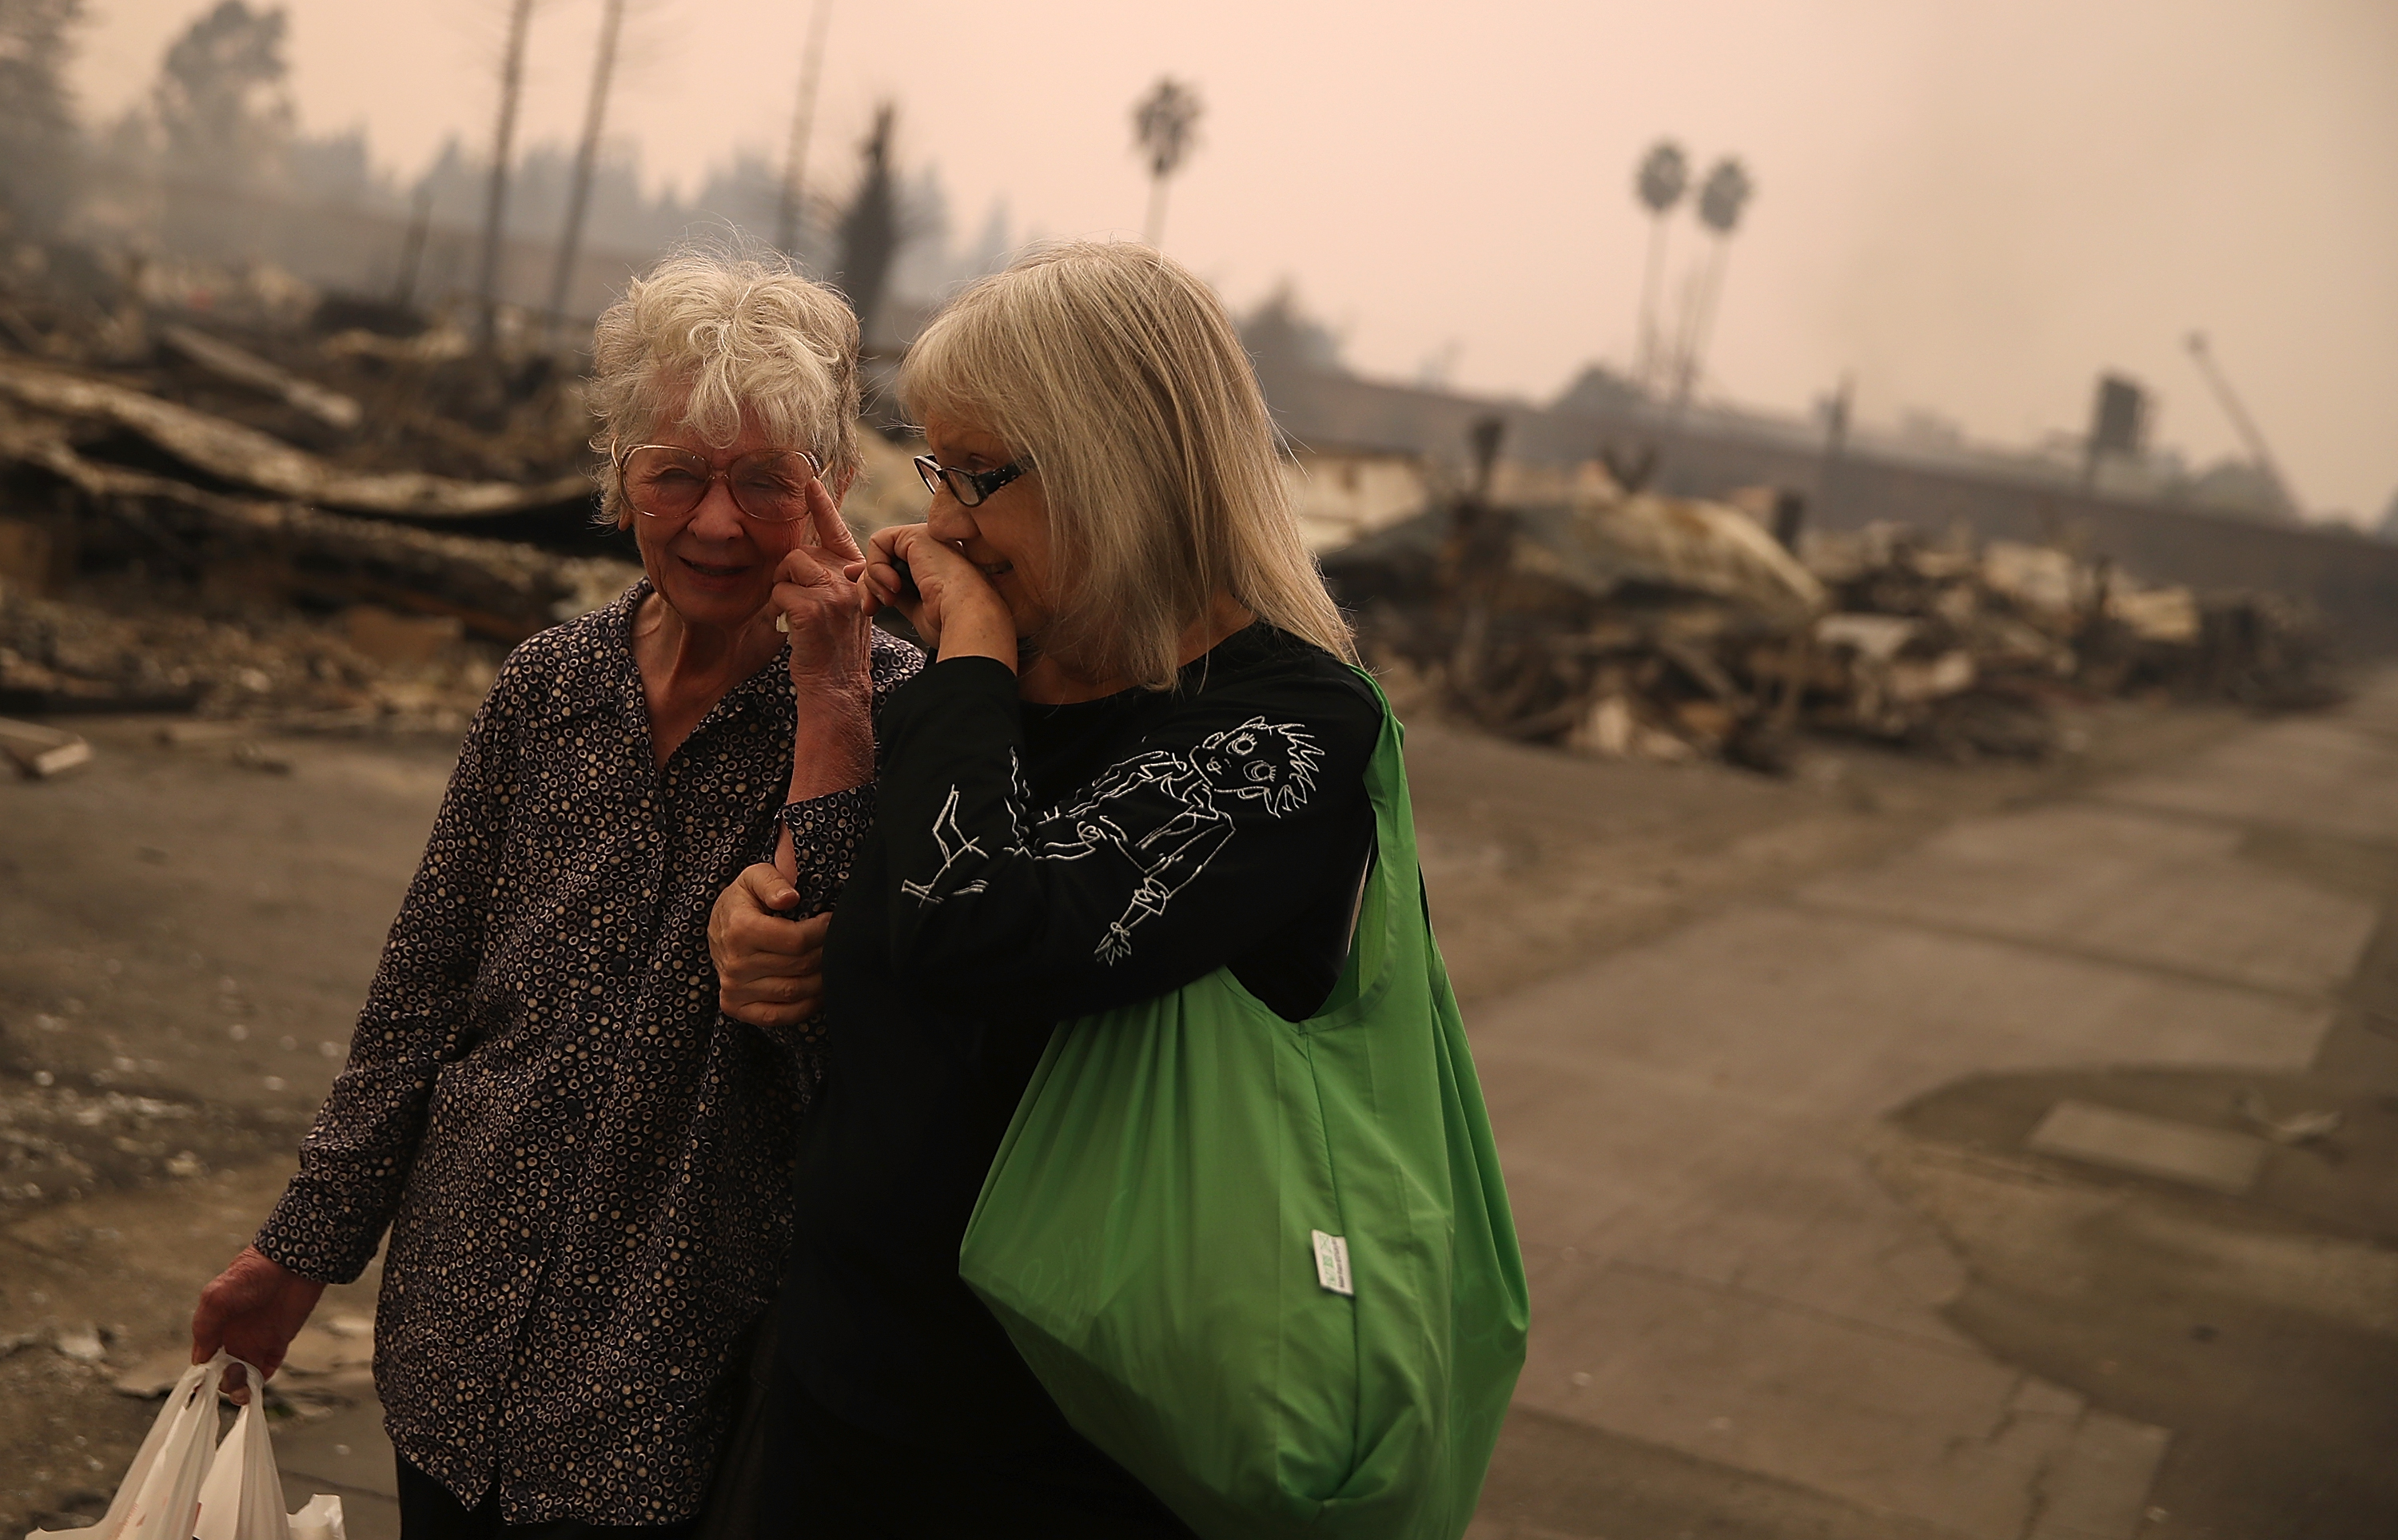 "<div class=""meta image-caption""><div class=""origin-logo origin-image none""><span>none</span></div><span class=""caption-text"">Residents walk through the fire damaged Journey's End Mobile Home Park on October 9, 2017 in Santa Rosa, California. (Justin Sullivan/Getty Images)</span></div>"